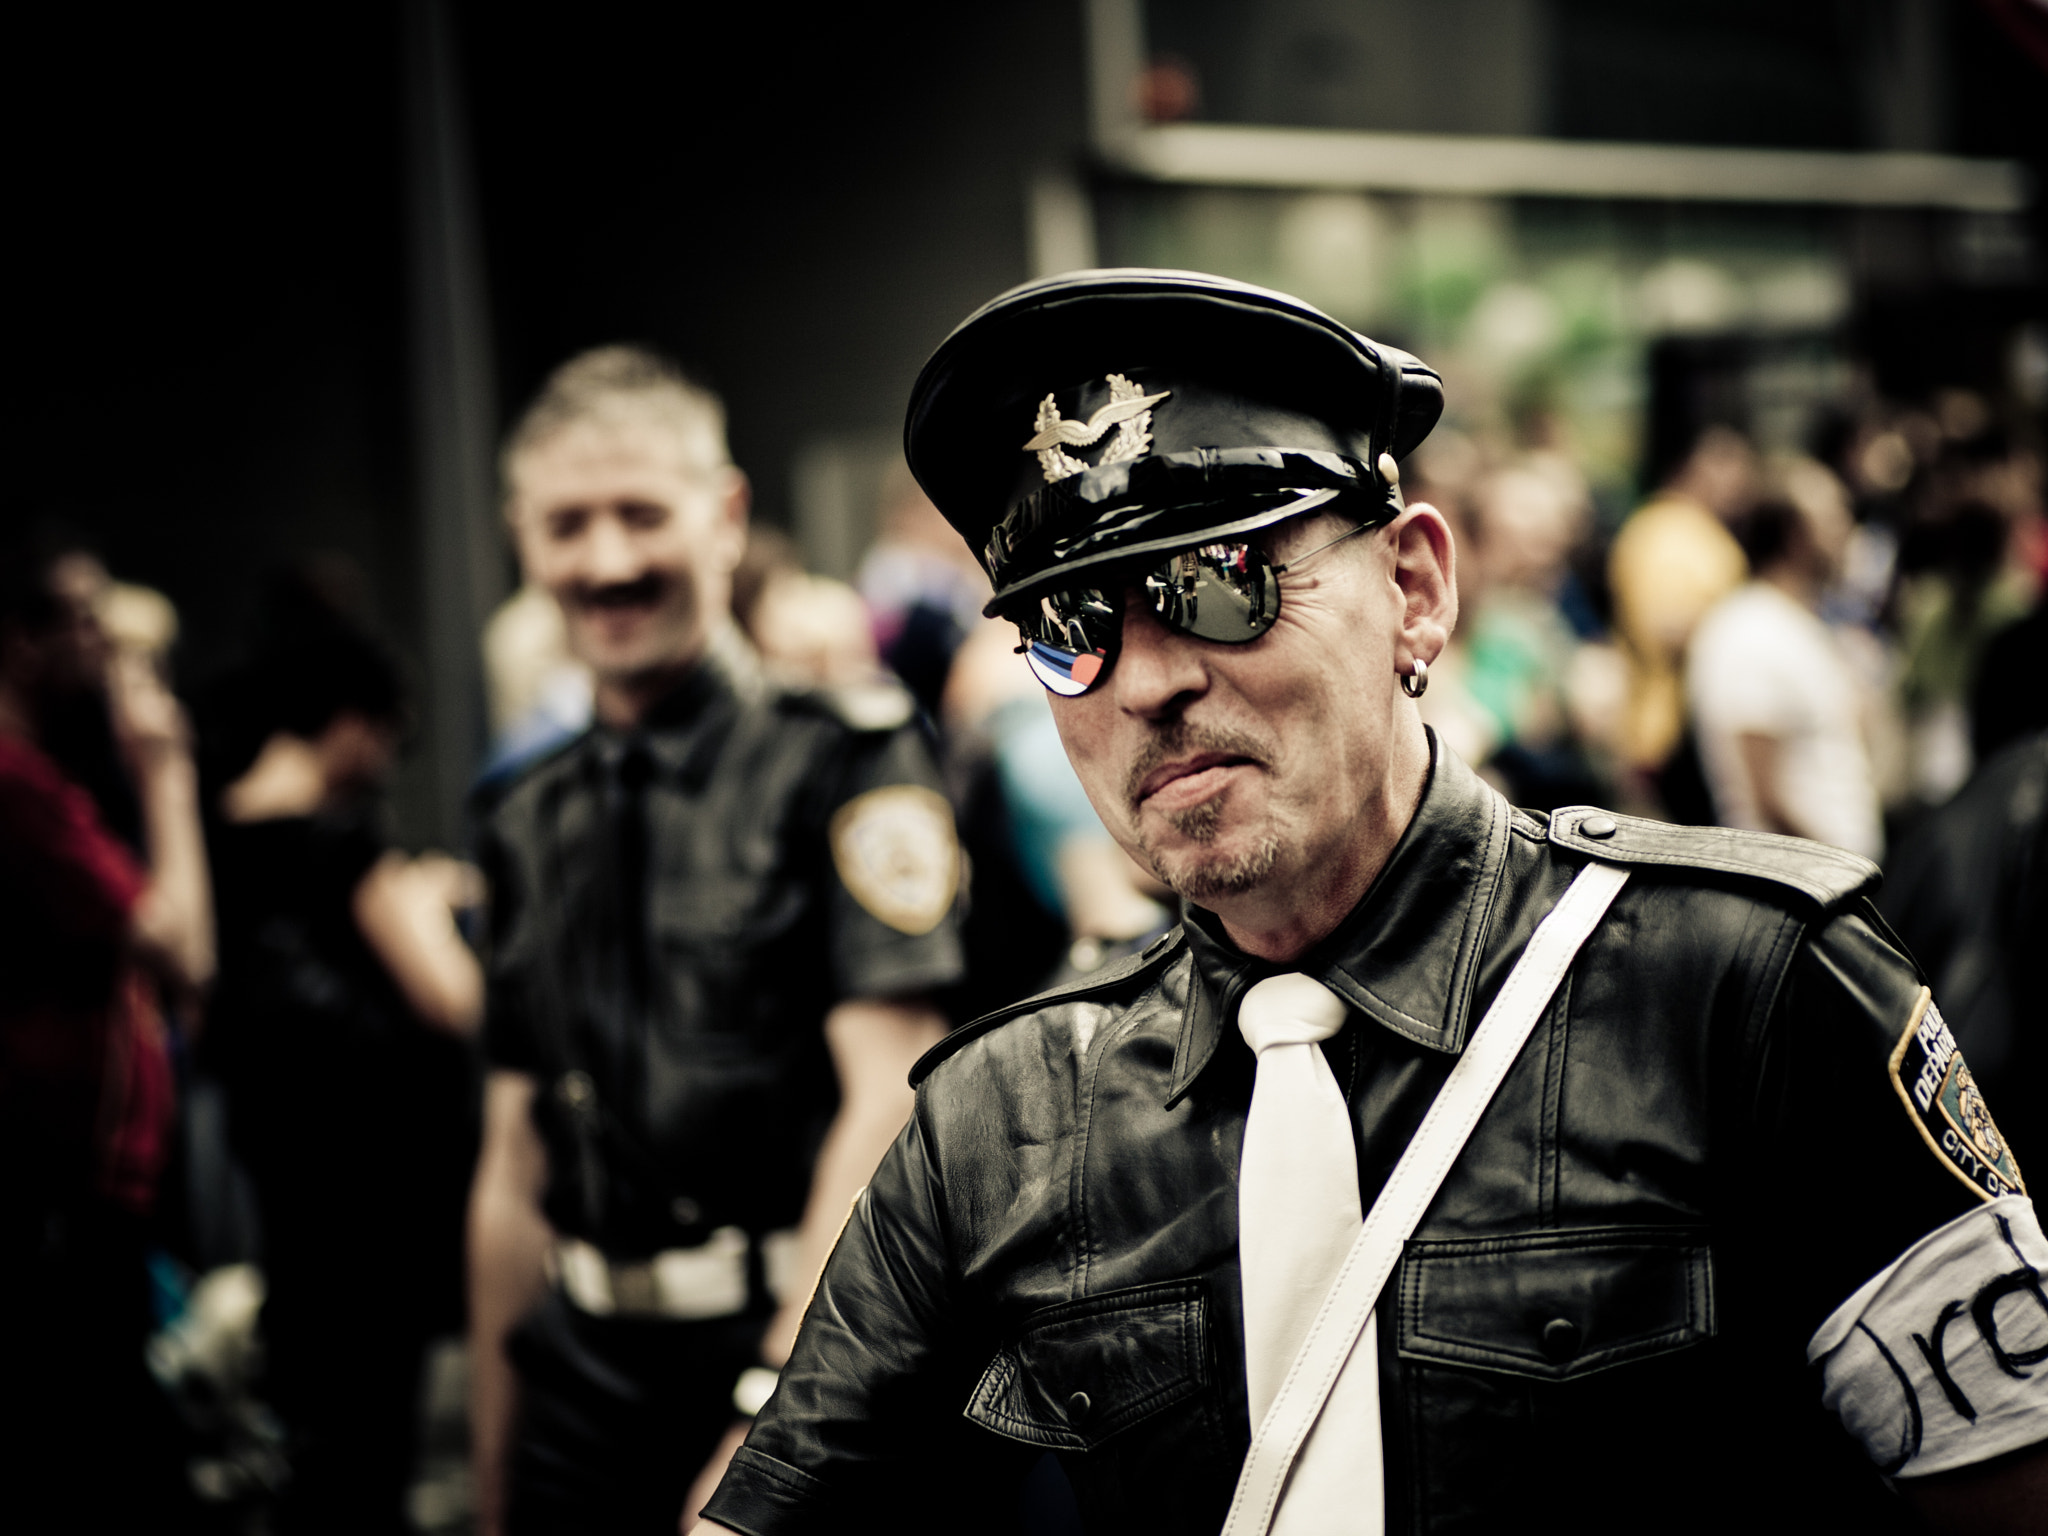 Photograph gaycop by tom jahn on 500px